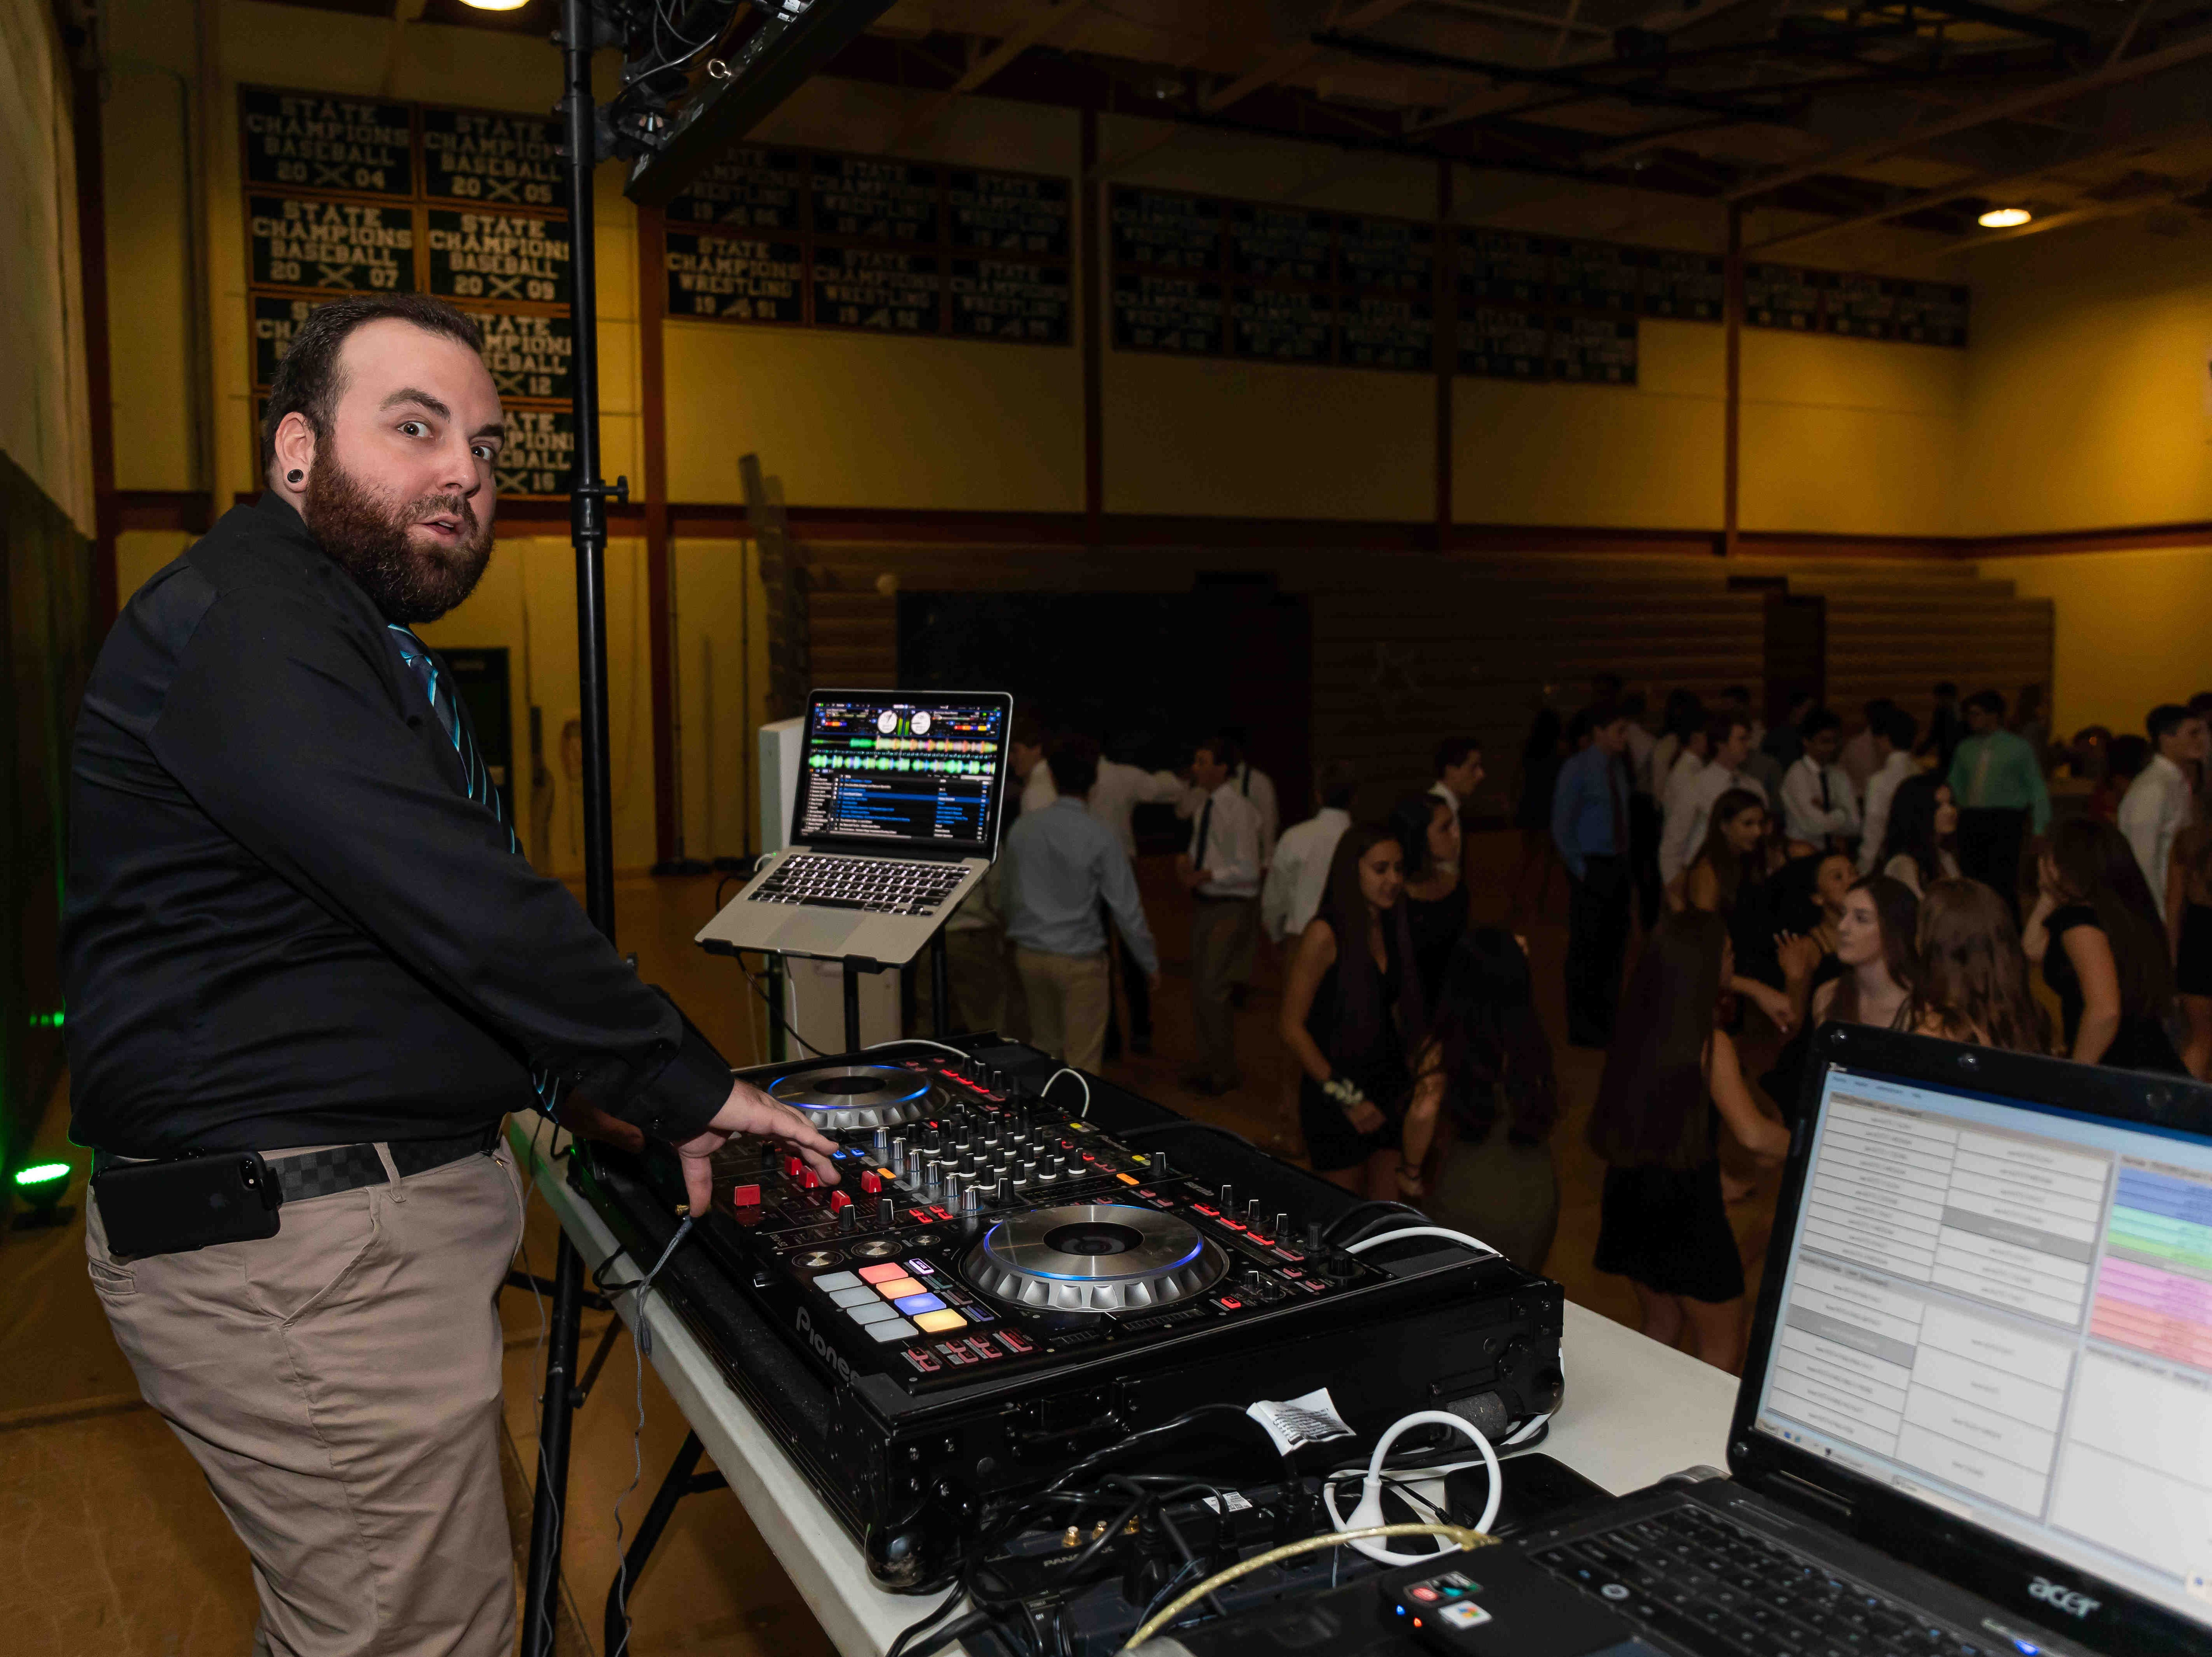 """Students attend St. Mark's High School homecoming dance Saturday, Oct. 20, 2018 at the school. The dance theme was """"Out of this World."""""""